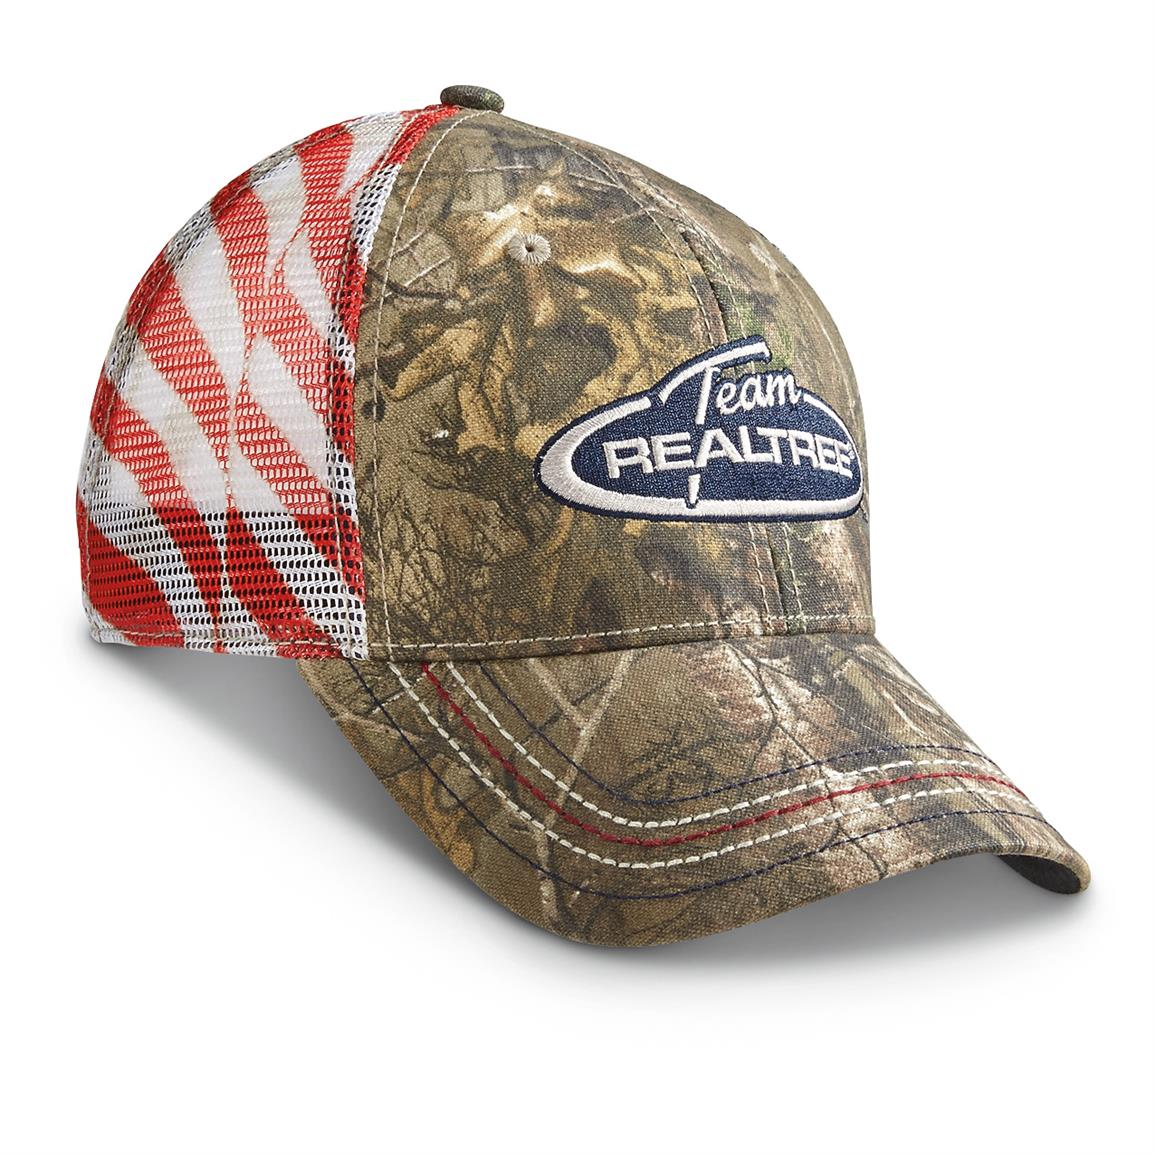 Outdoor Cap Americana Mesh Ball Cap, Realtree Xtra